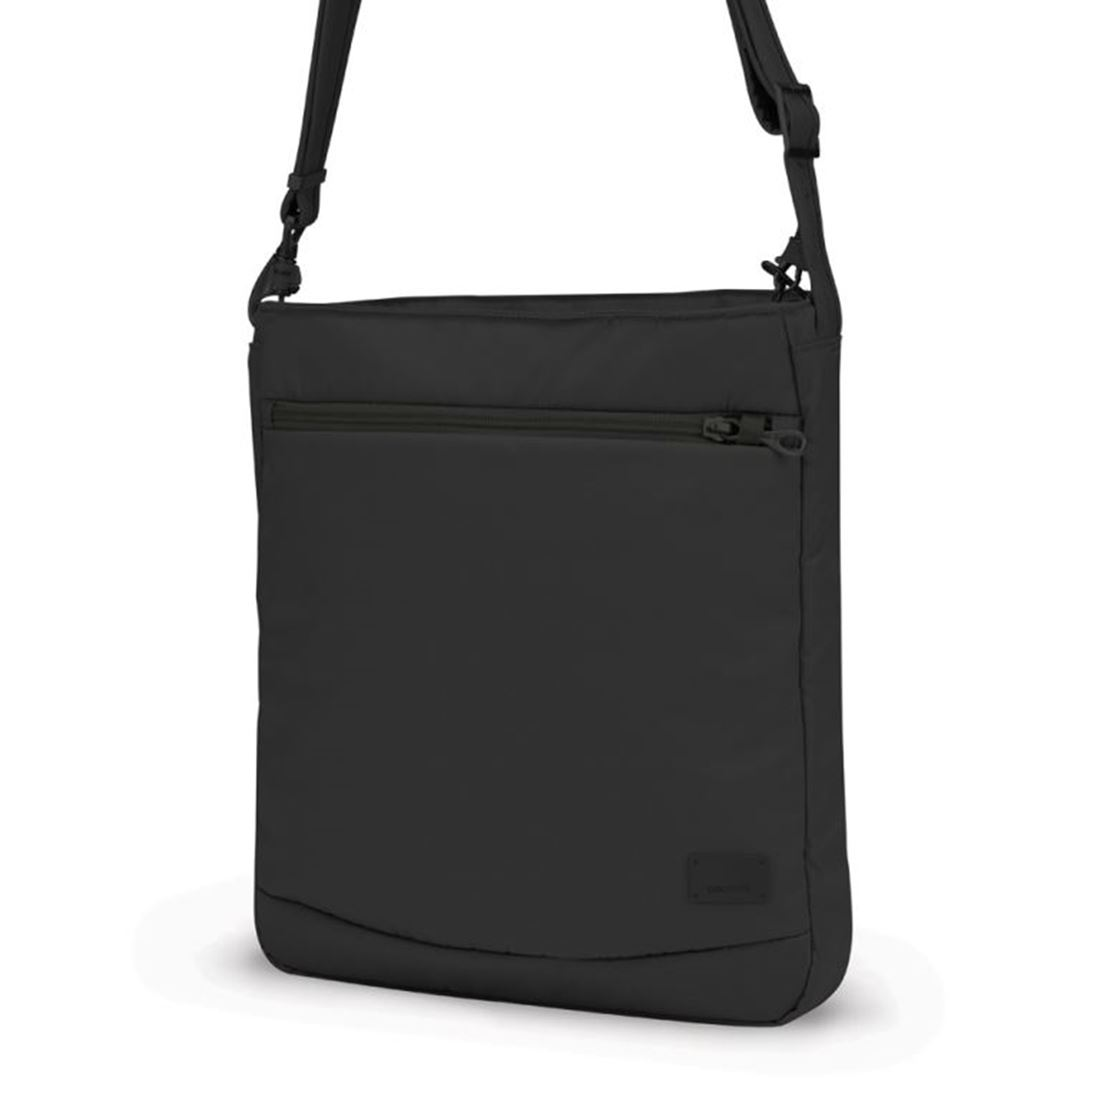 Picture of Pacsafe Citysafe CS175 Shoulder Bag